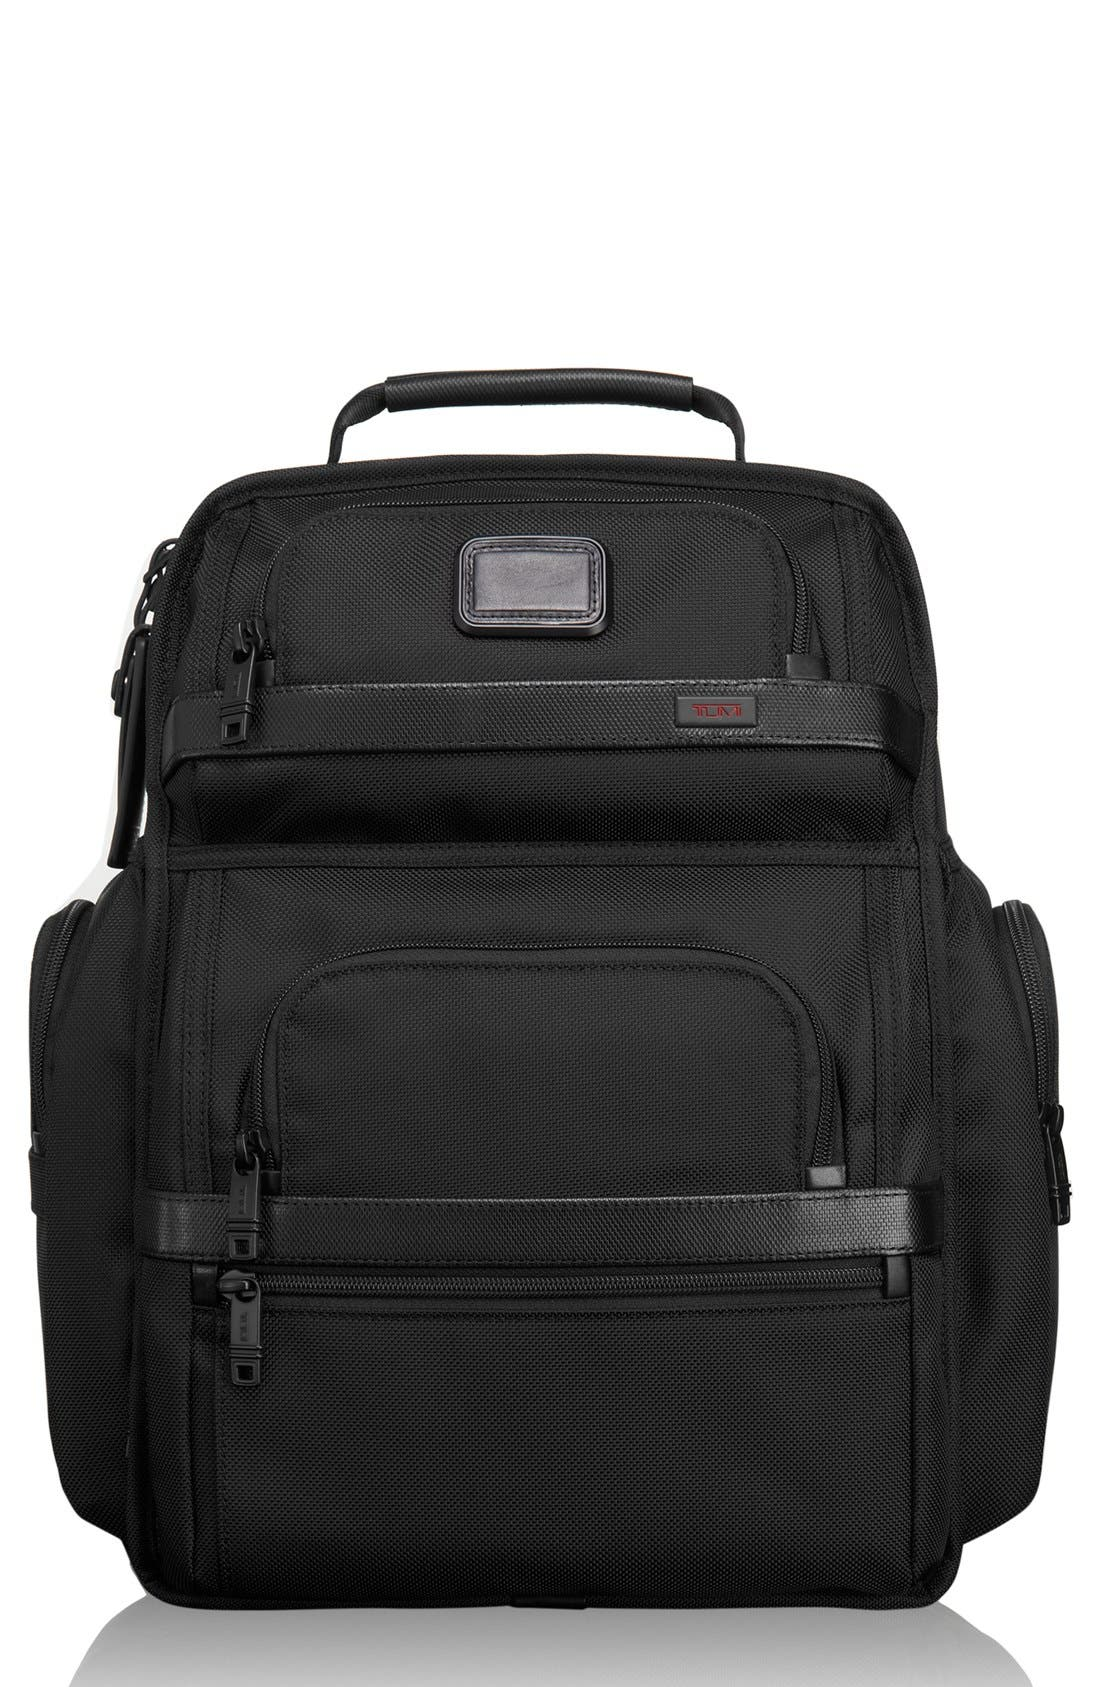 Alpha 2 T-Pass Laptop Brief Pack with Tumi ID Lock Pocket,                             Main thumbnail 1, color,                             Black